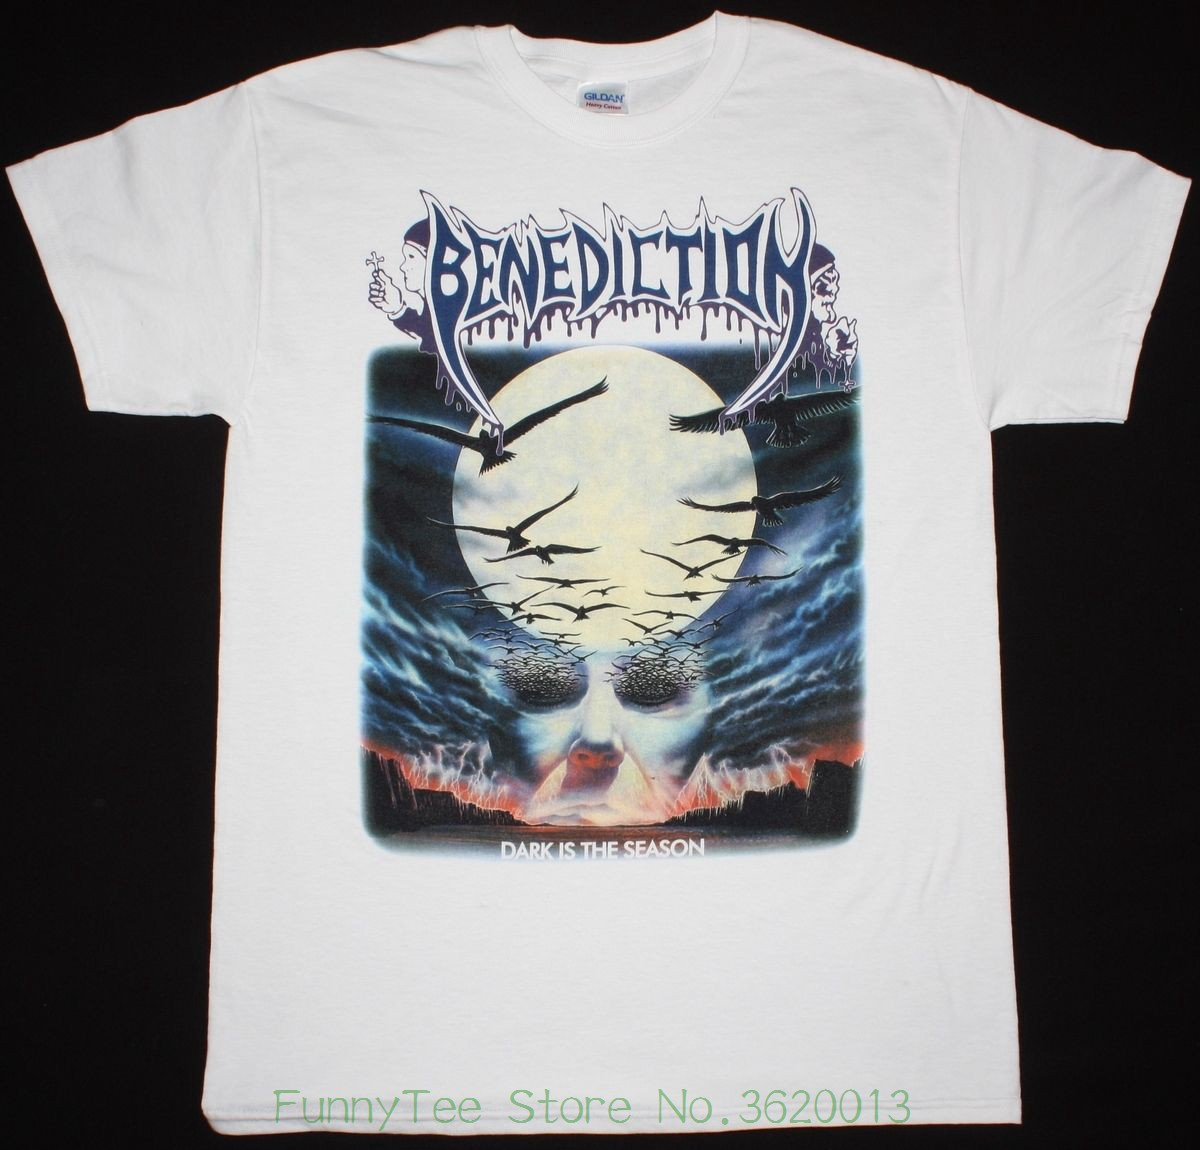 Benediction Dark Is The Season Dismember Napalm Death S - xxl New White T-shirt